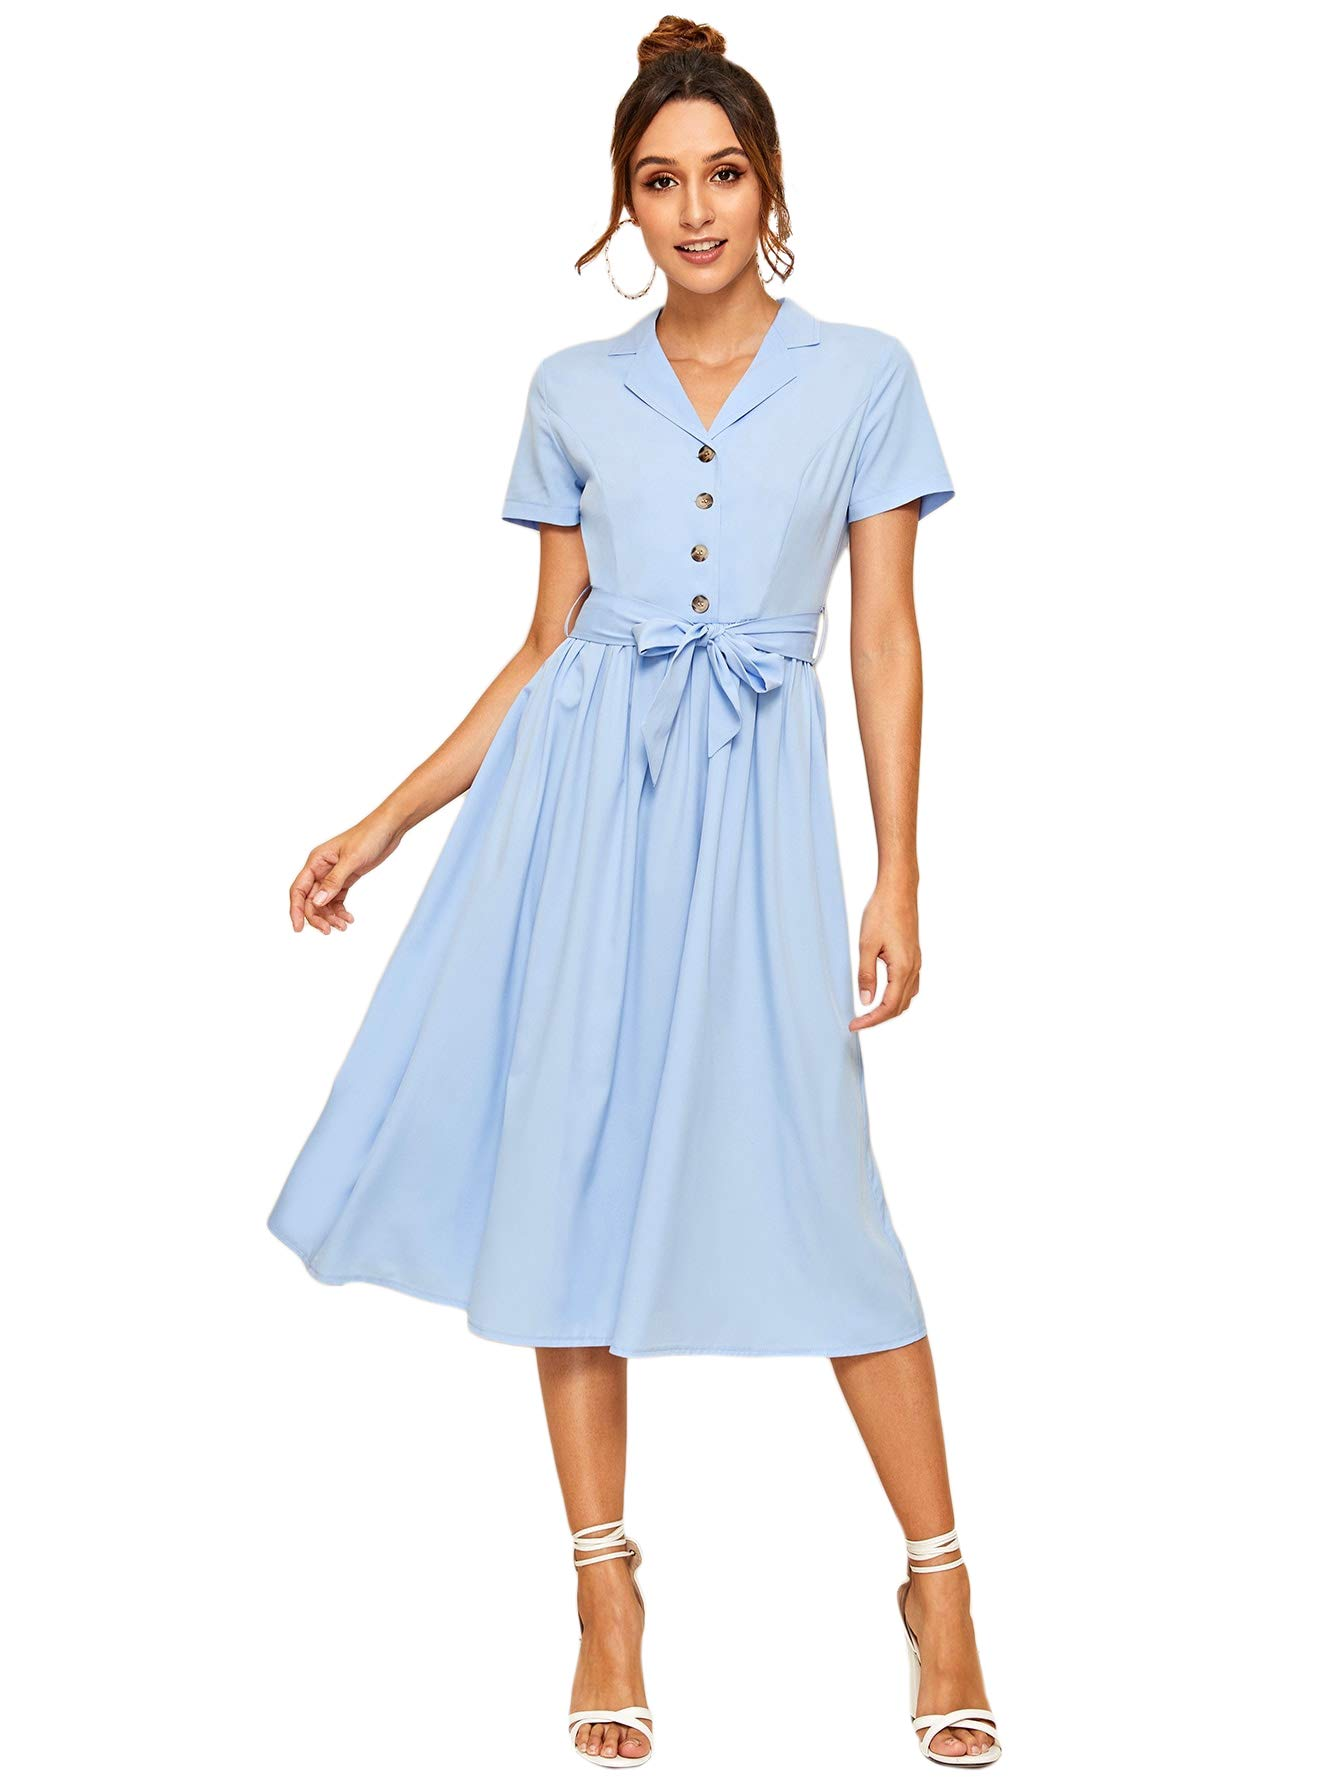 Available at Amazon: Verdusa Women's Short Sleeve Button Front Belted Solid Midi Dress